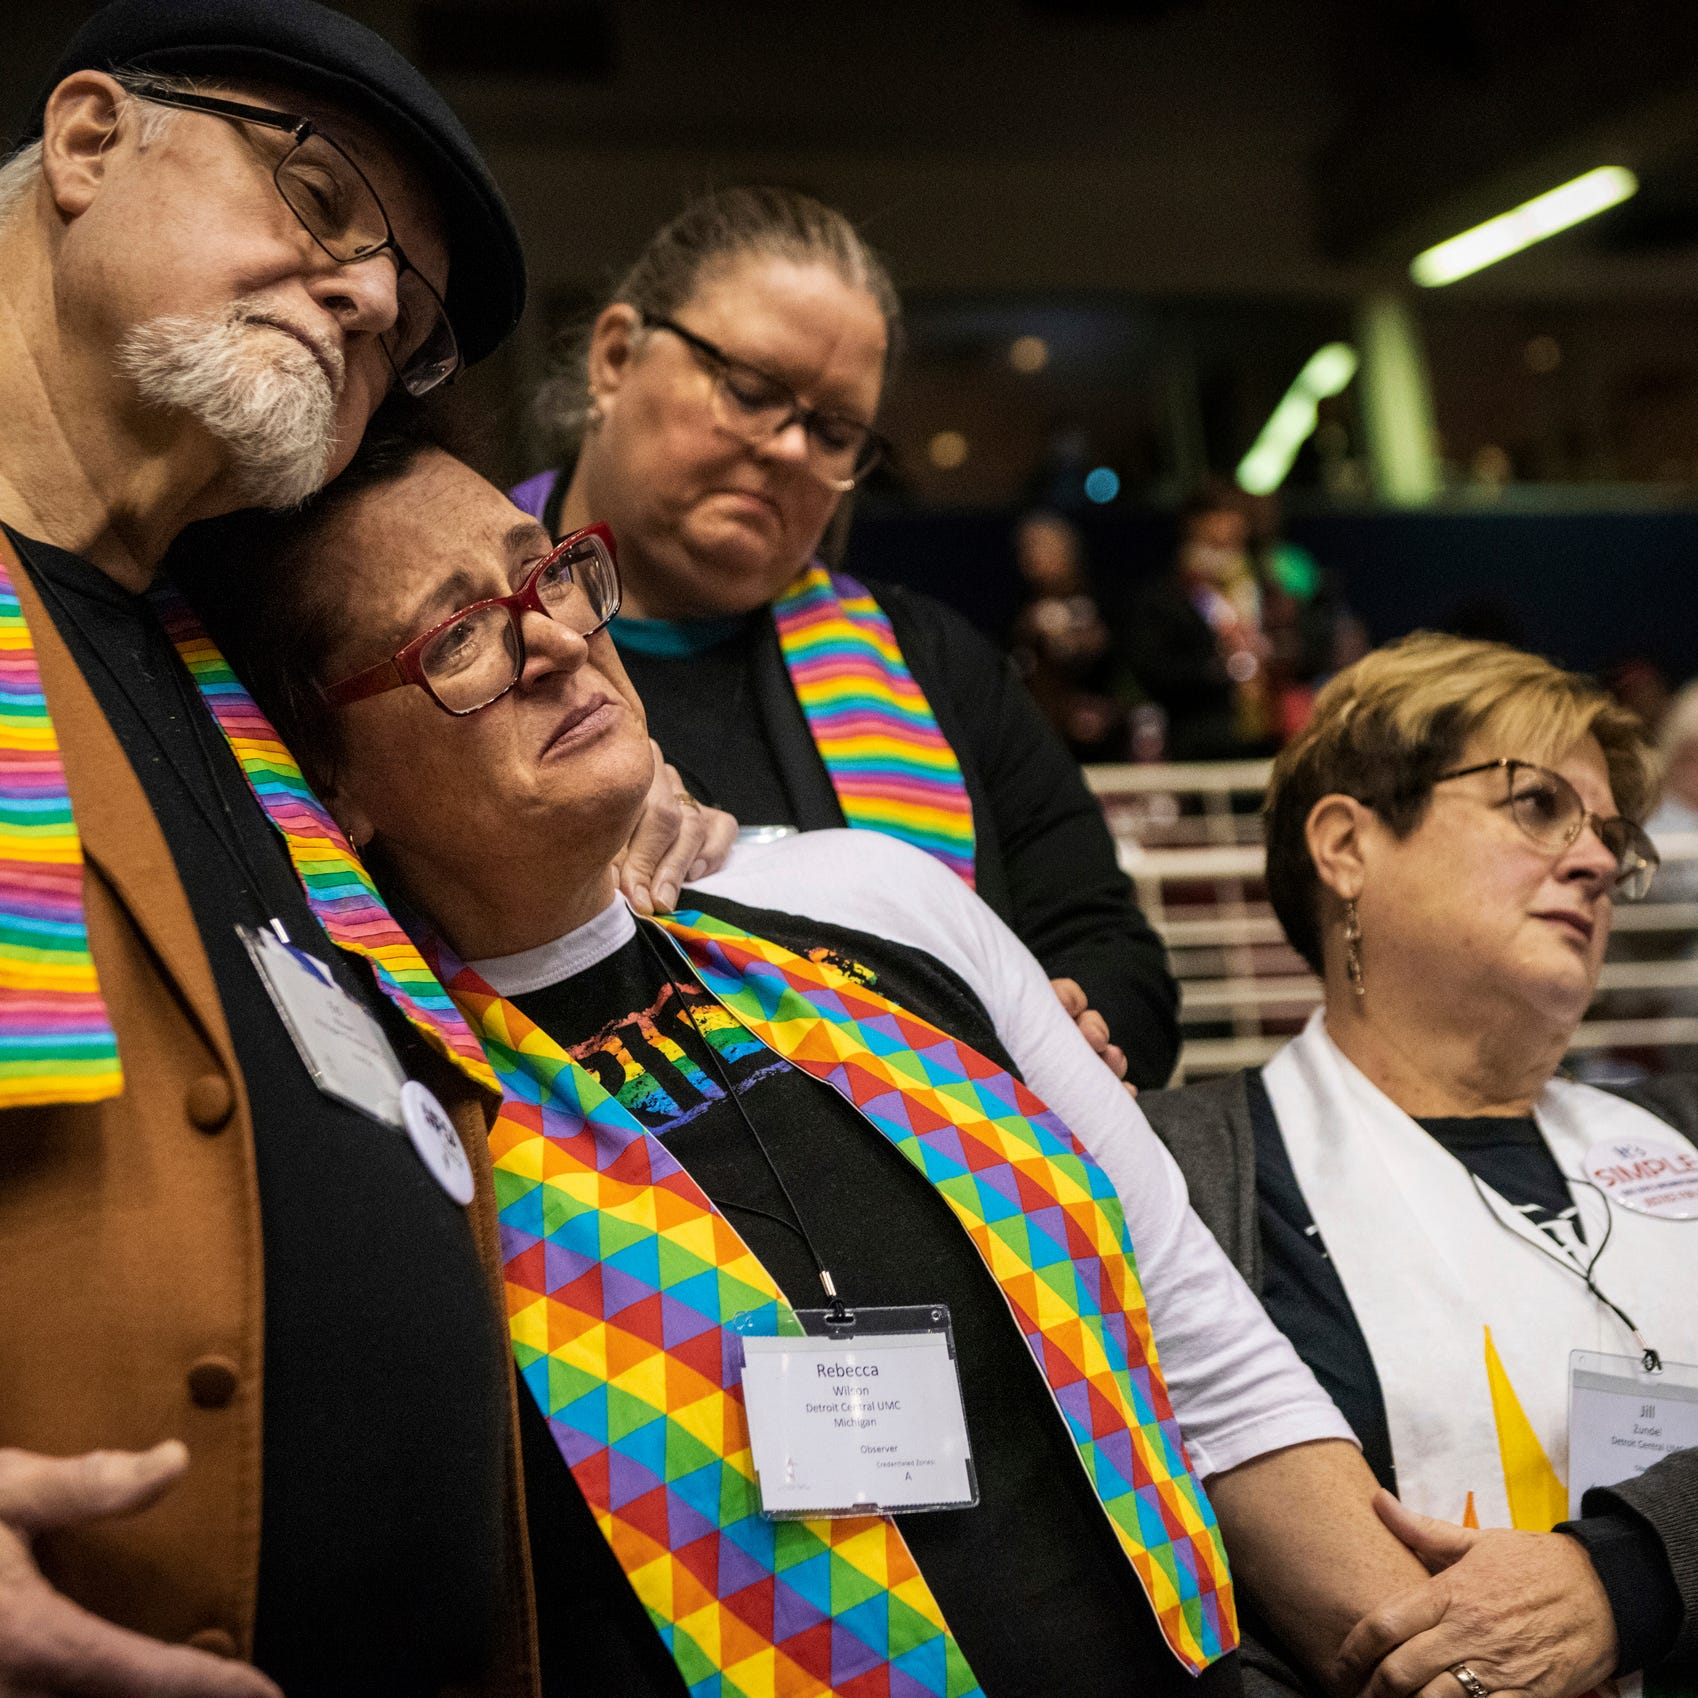 United Methodist Church votes to keep ban on same-sex weddings, gay clergy